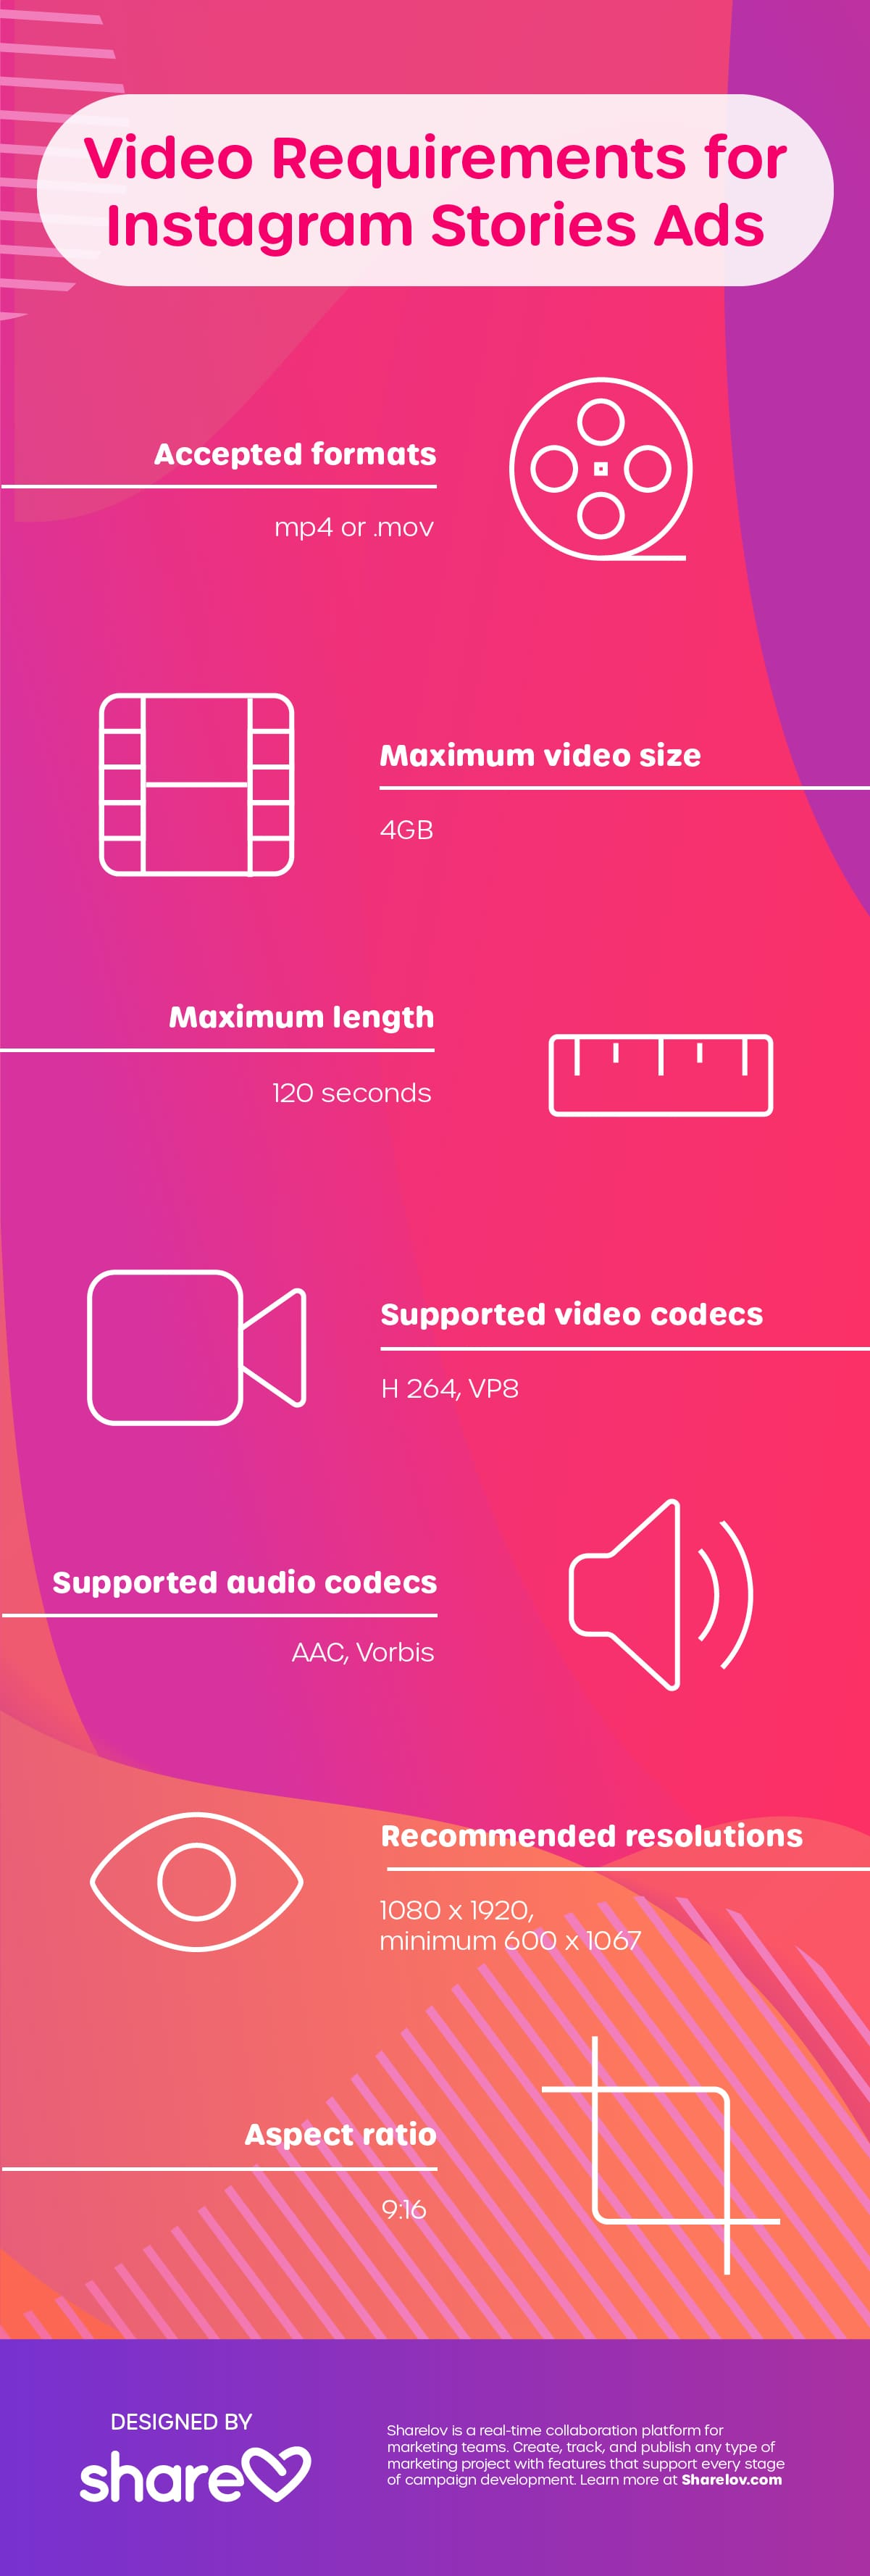 Video Requirements for Instragram Stories Ads